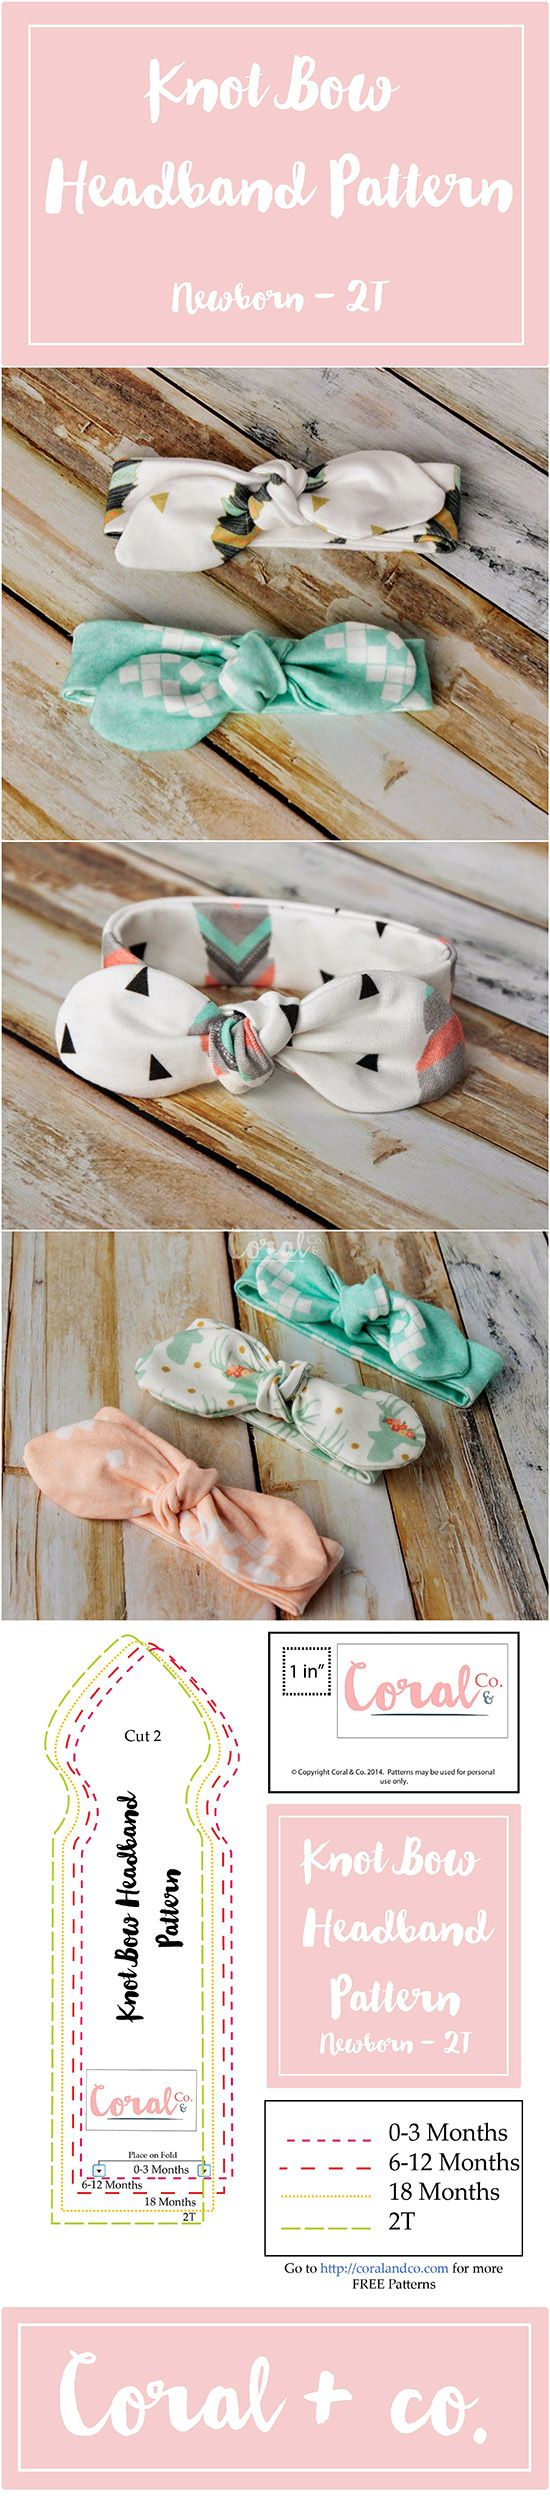 How to Make Knot-Bow Headbands for Babies & Toddlers: An Easy DIY Tutorial with Patterns   BlogHer